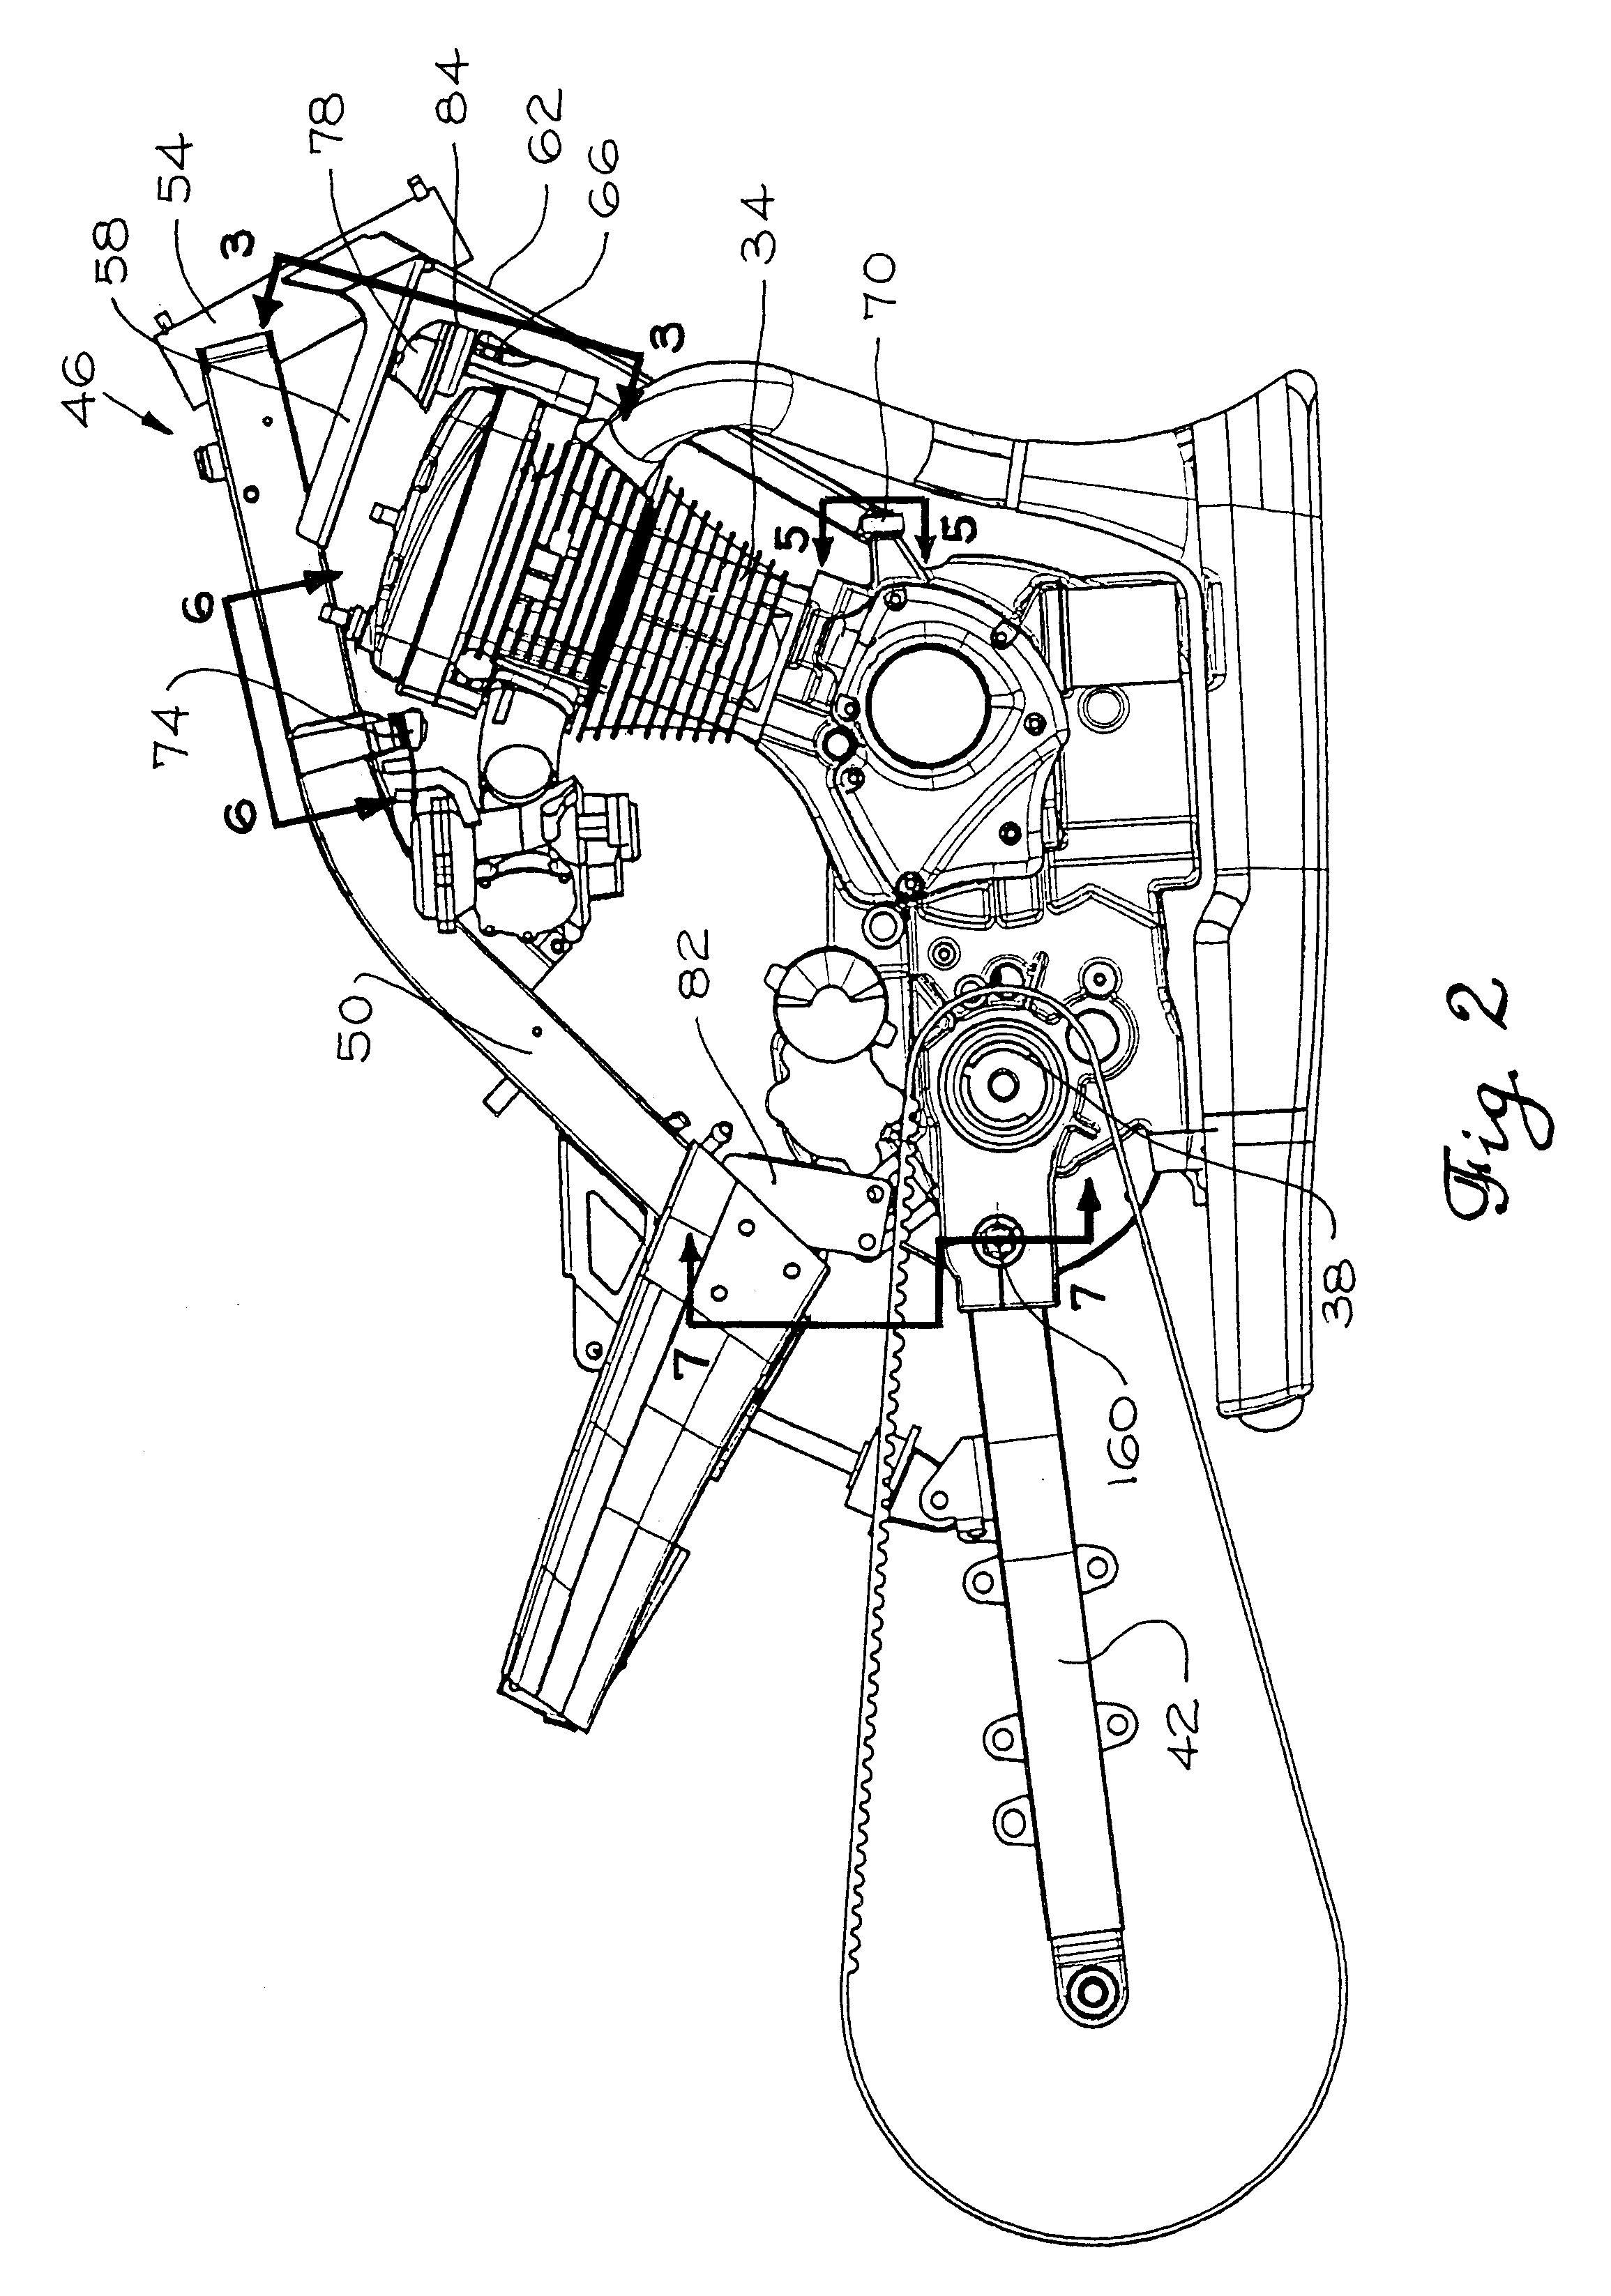 Patent Us6213240 Motorcycle Engine And Transmission Mounting 22 Rifle Parts Diagram Car Component Drawing